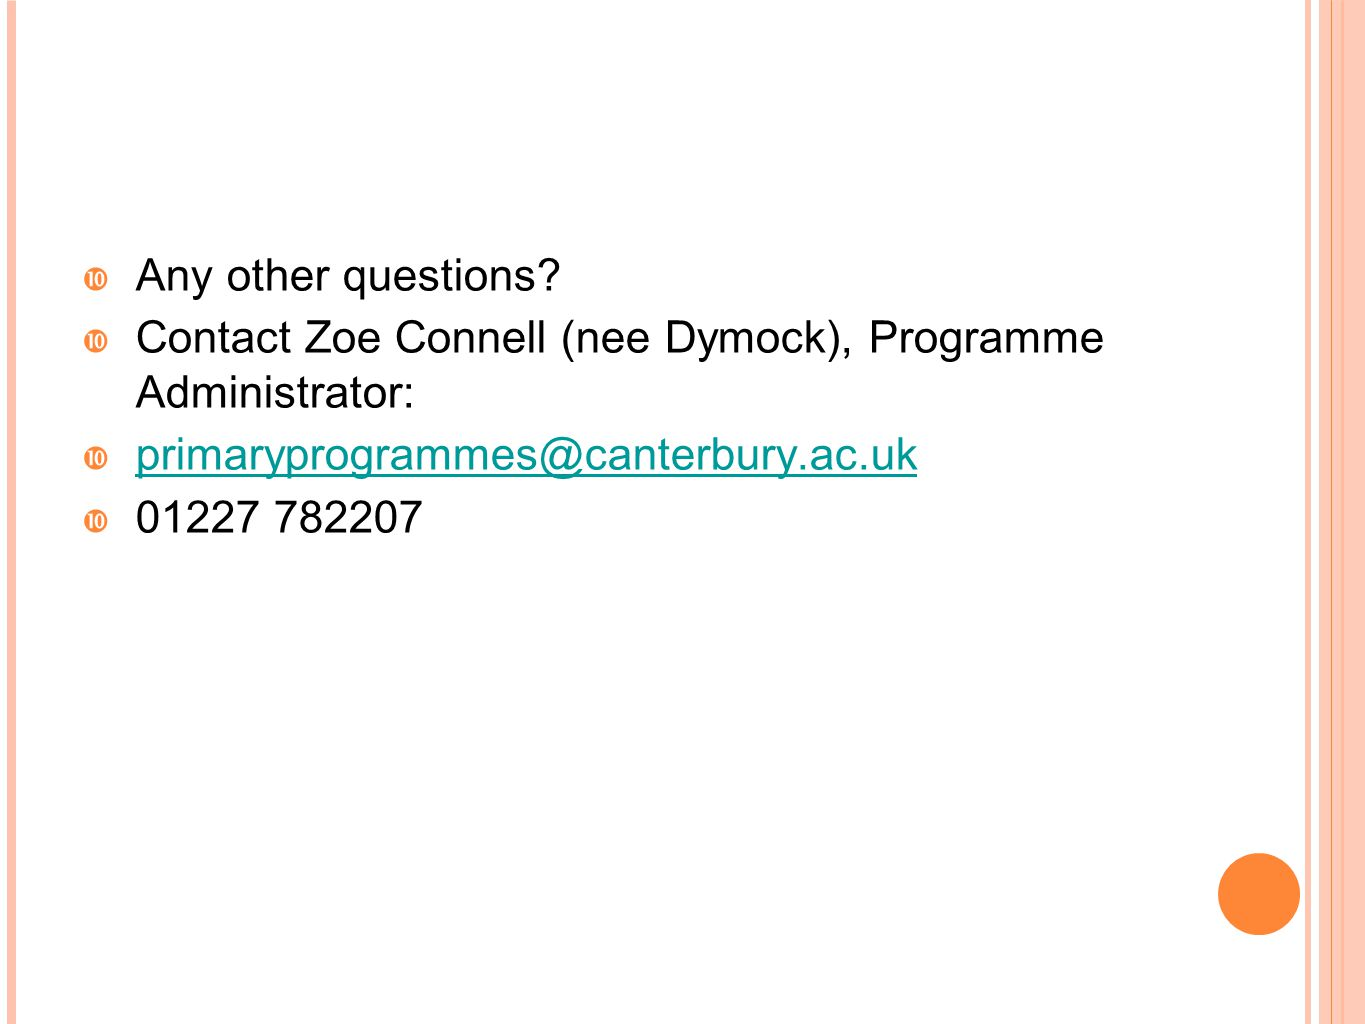 Any other questions Contact Zoe Connell (nee Dymock), Programme Administrator: primaryprogrammes@canterbury.ac.uk.